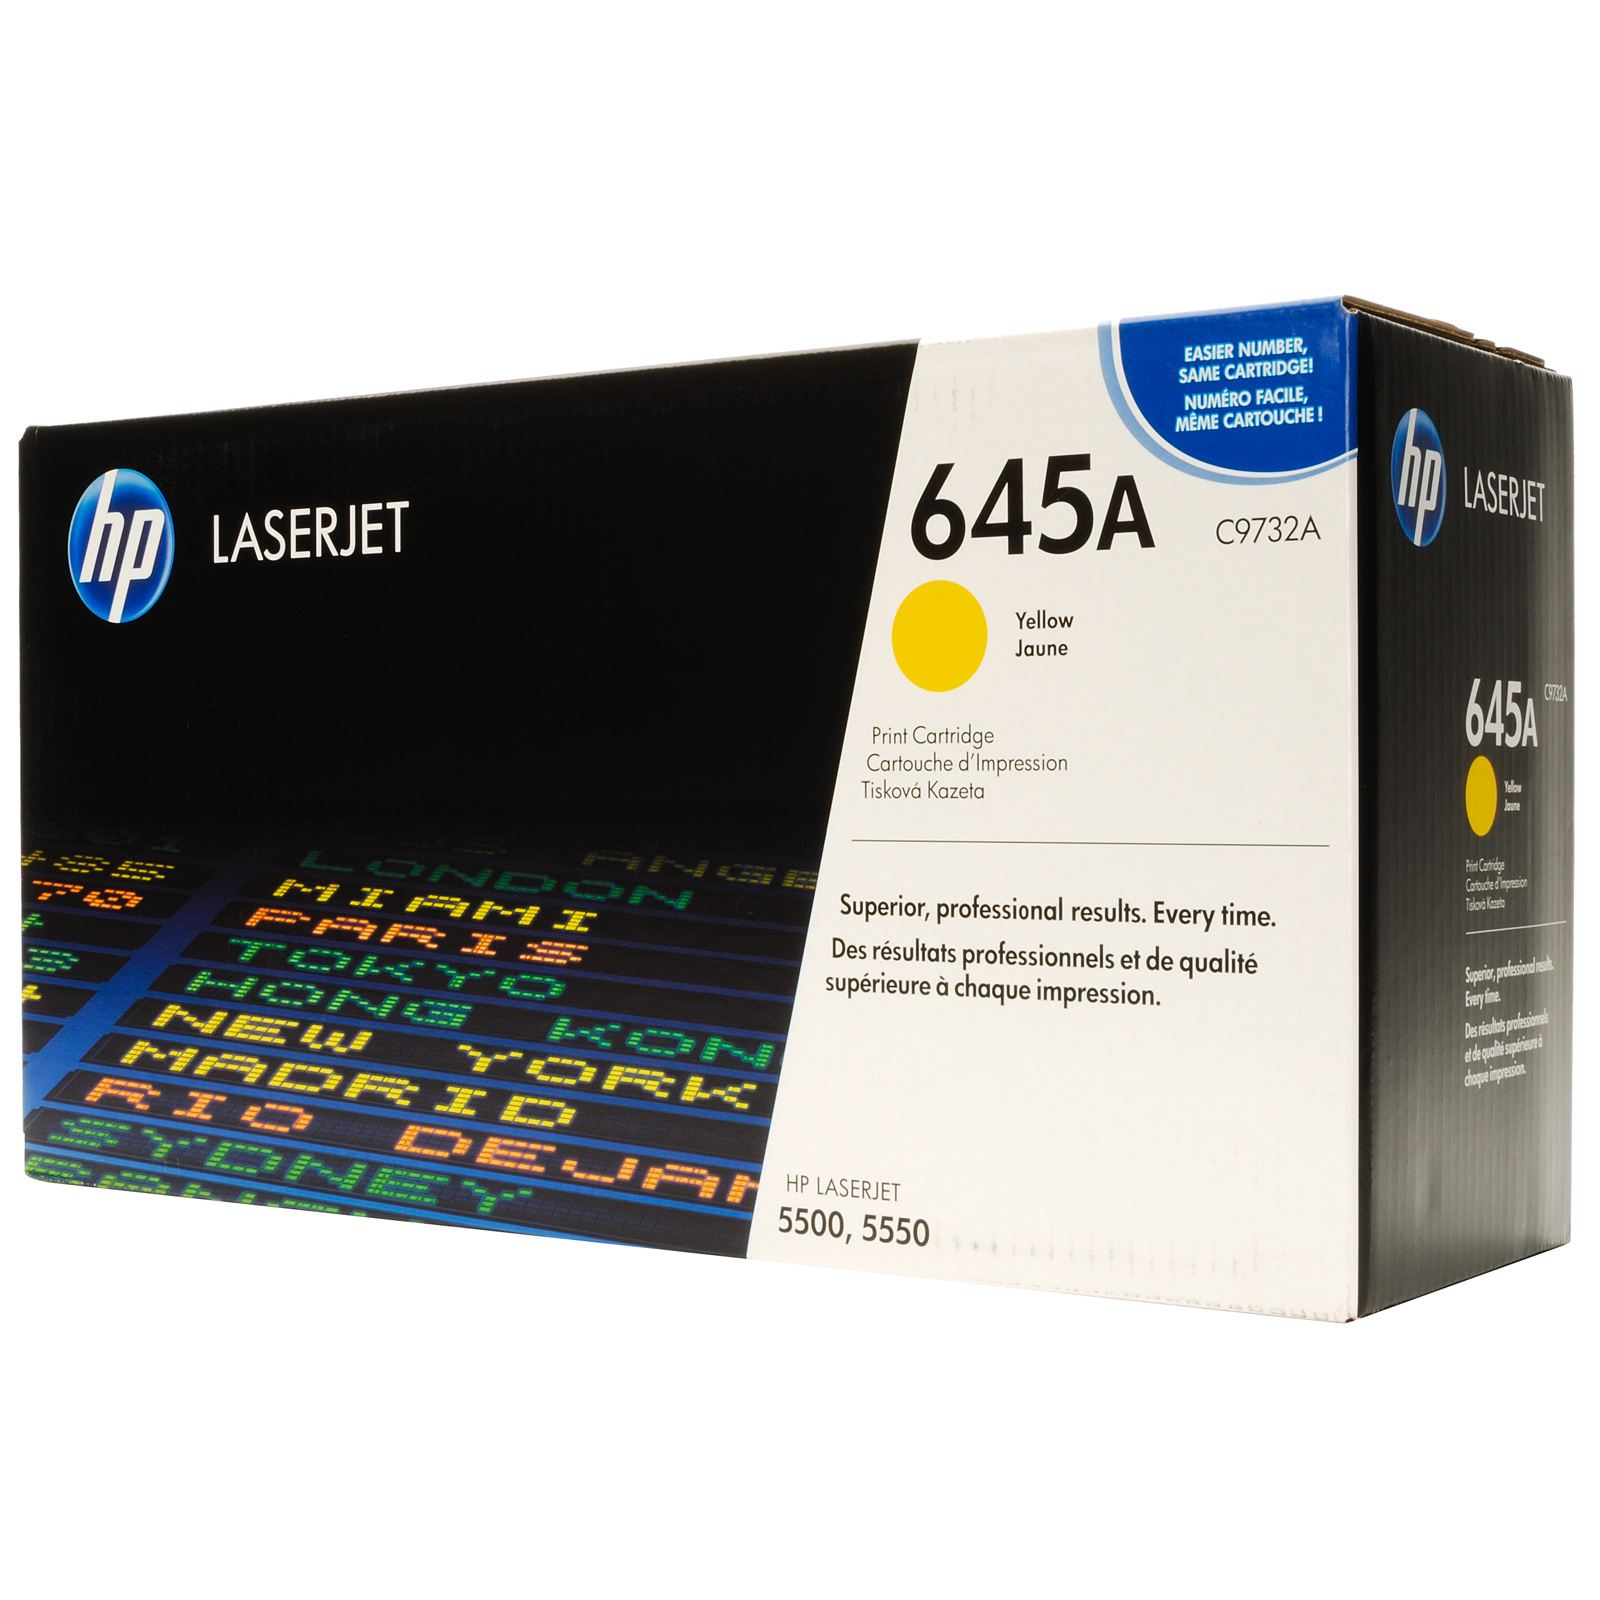 HP C9732A Yellow (645A) Toner Cartridge